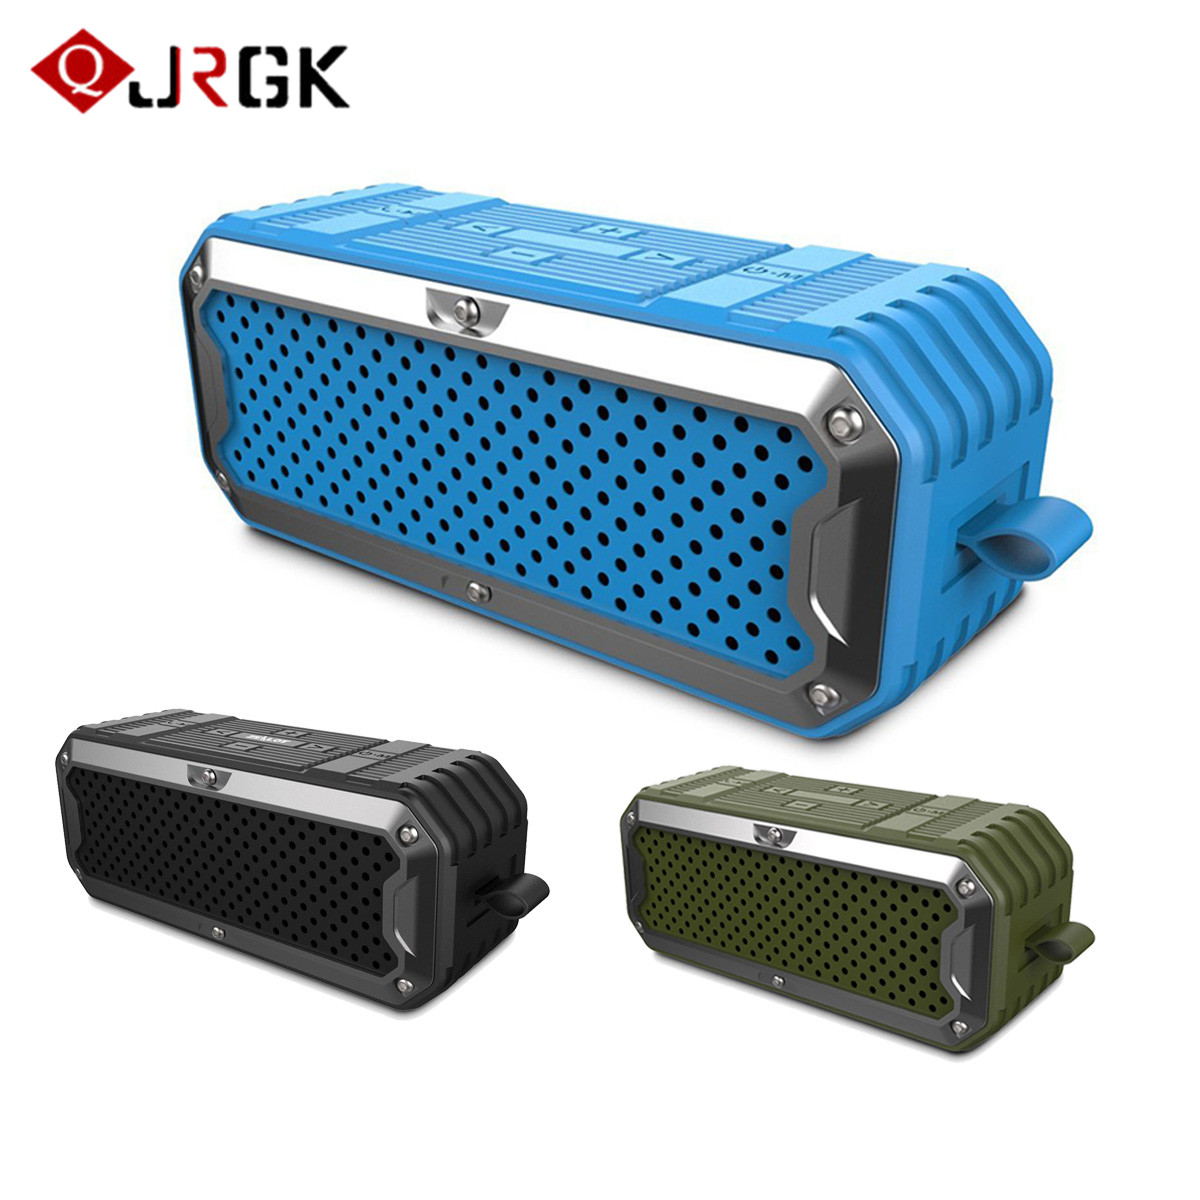 JRGK ZEALOT S6 Waterproof Wireless Bluetooth Speakers With Microphone Dual Drivers Subwoofer AUX TFPower Bank 5200mAh Battery